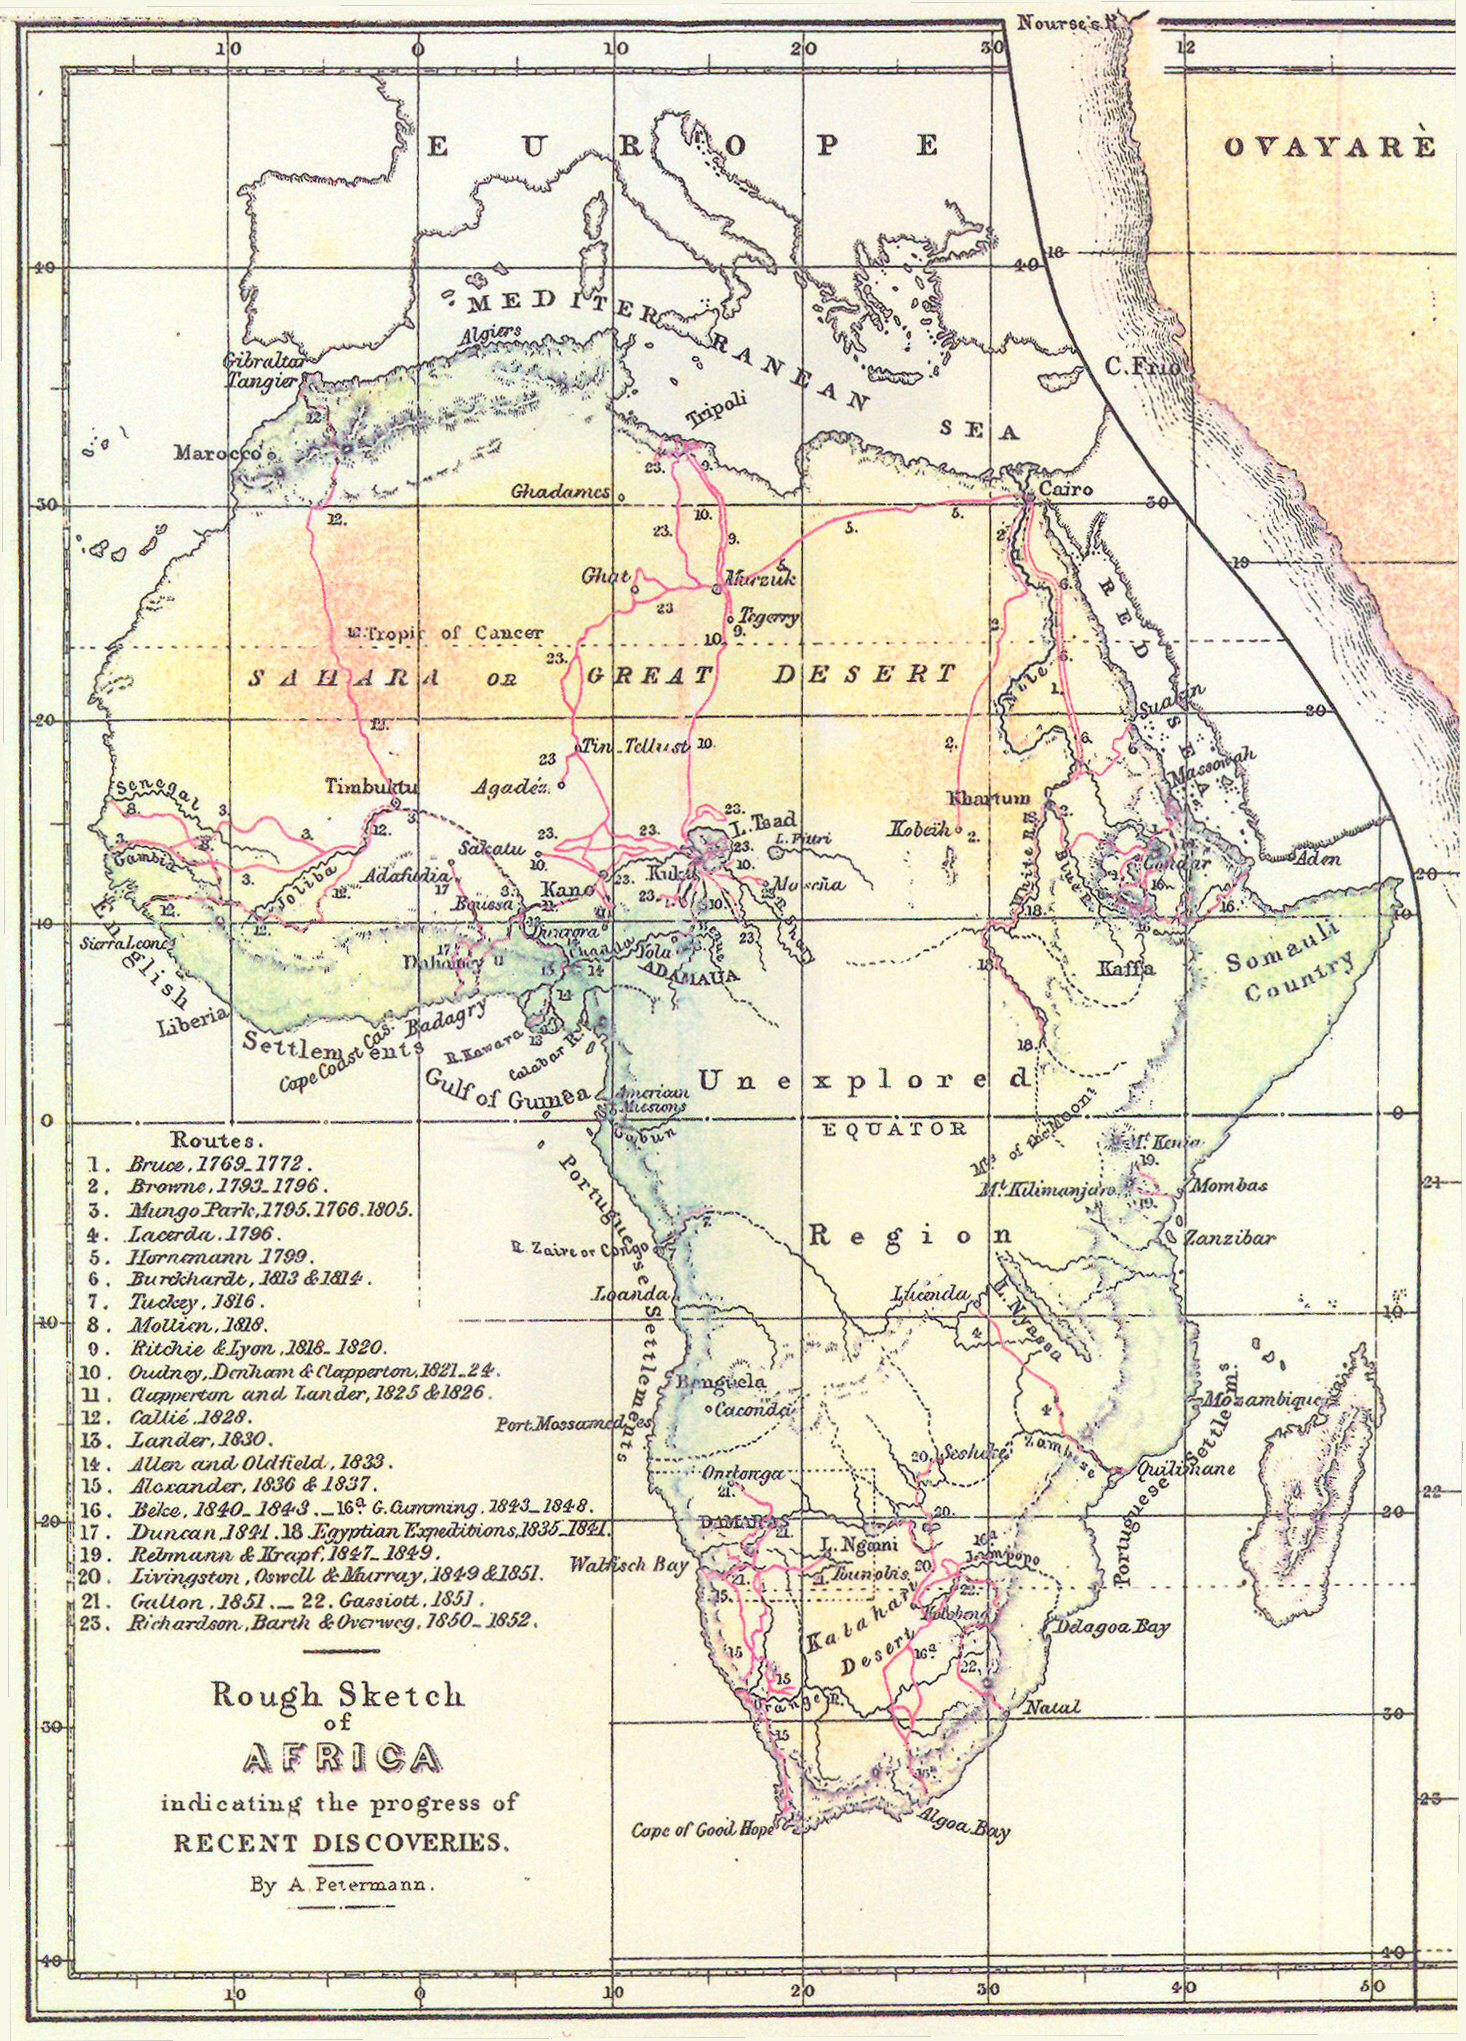 19th Century Africa Map.File Routes Of European Explorers In Africa To 1853 Jpg Wikimedia